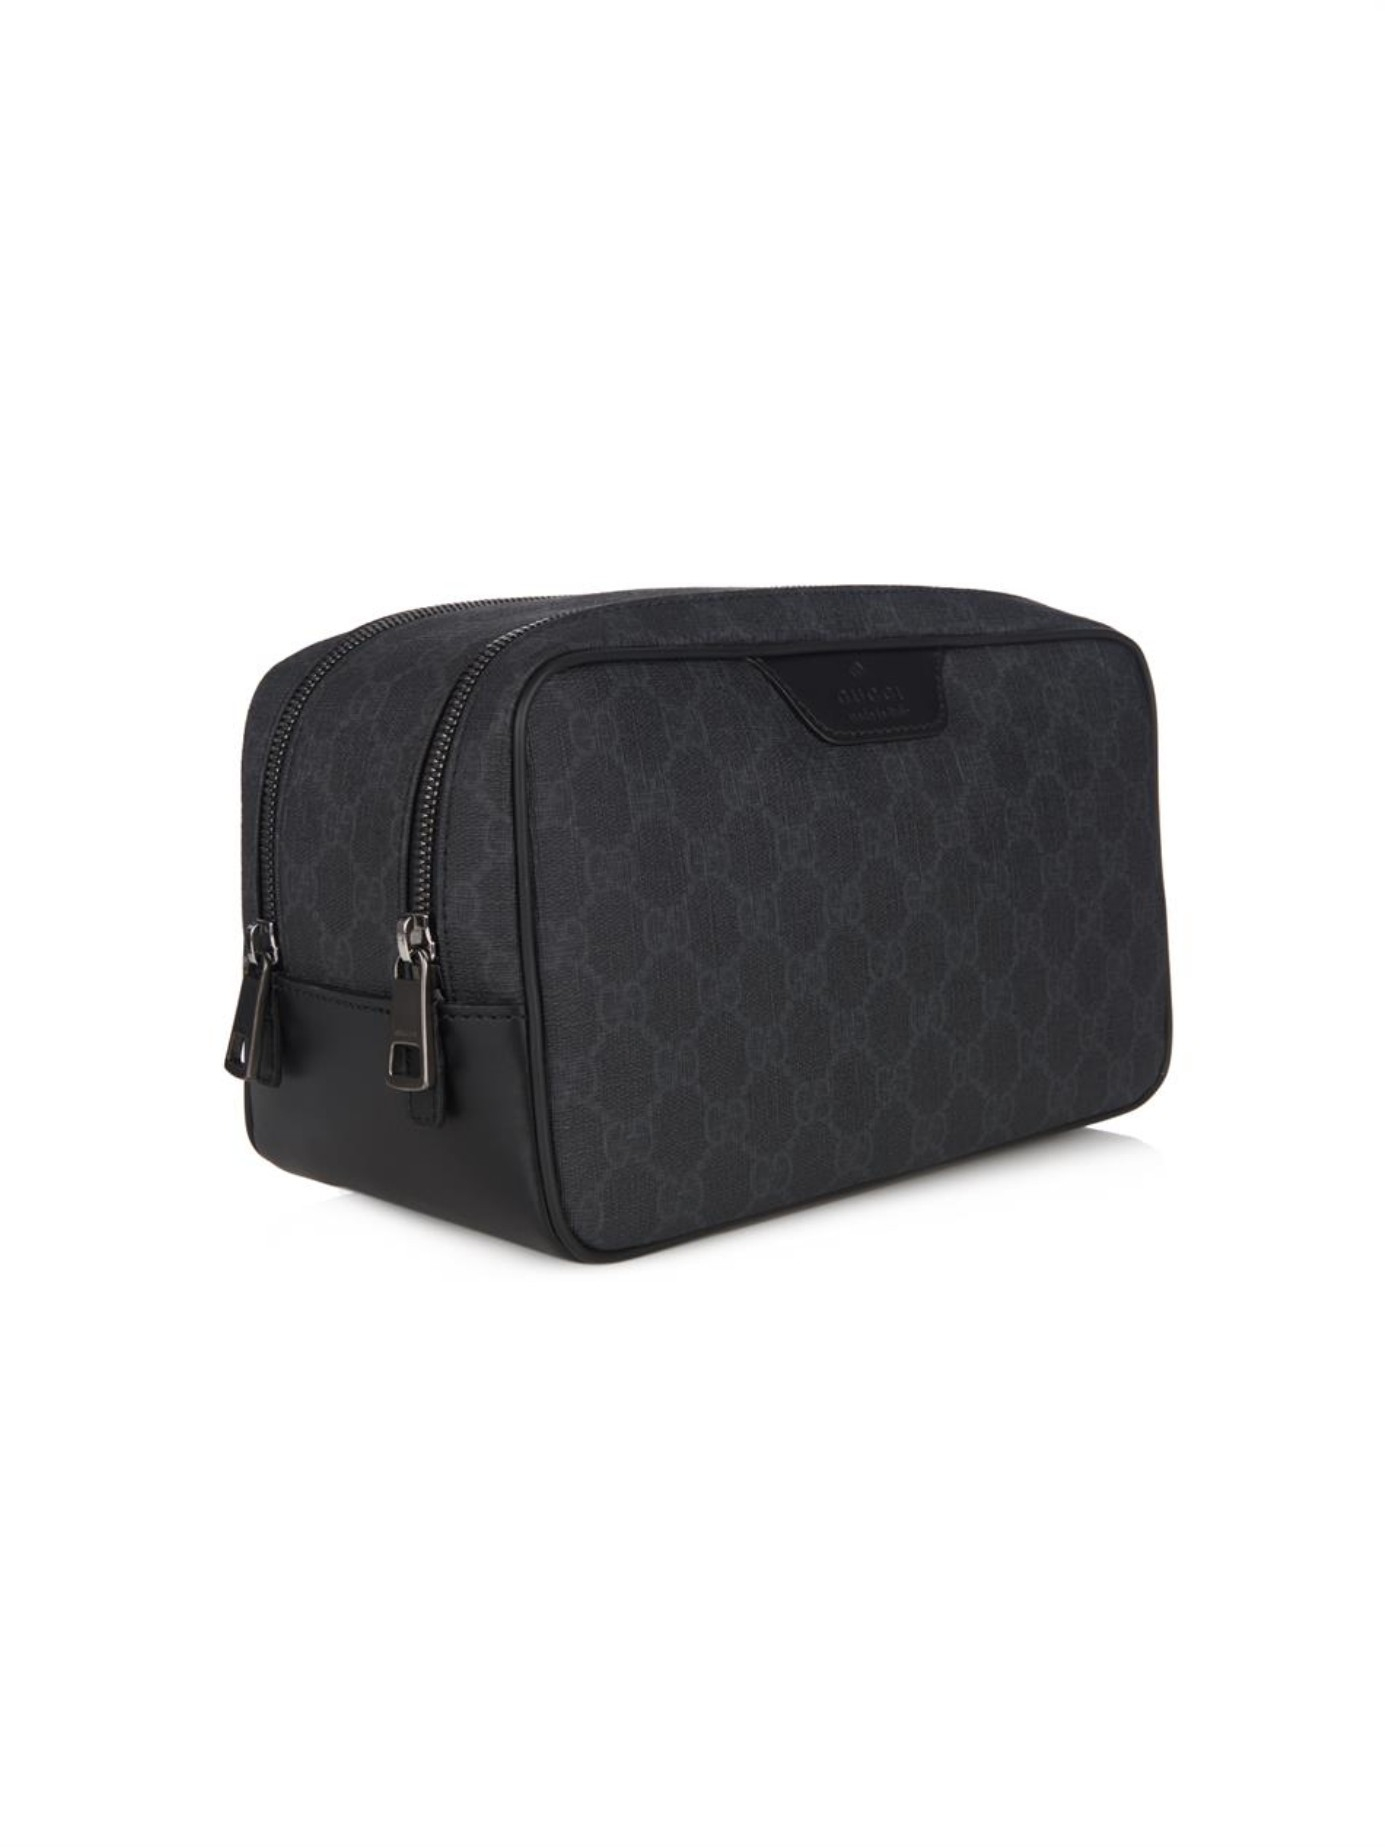 202fac24a381 Gucci Wash Bag Black   Stanford Center for Opportunity Policy in ...